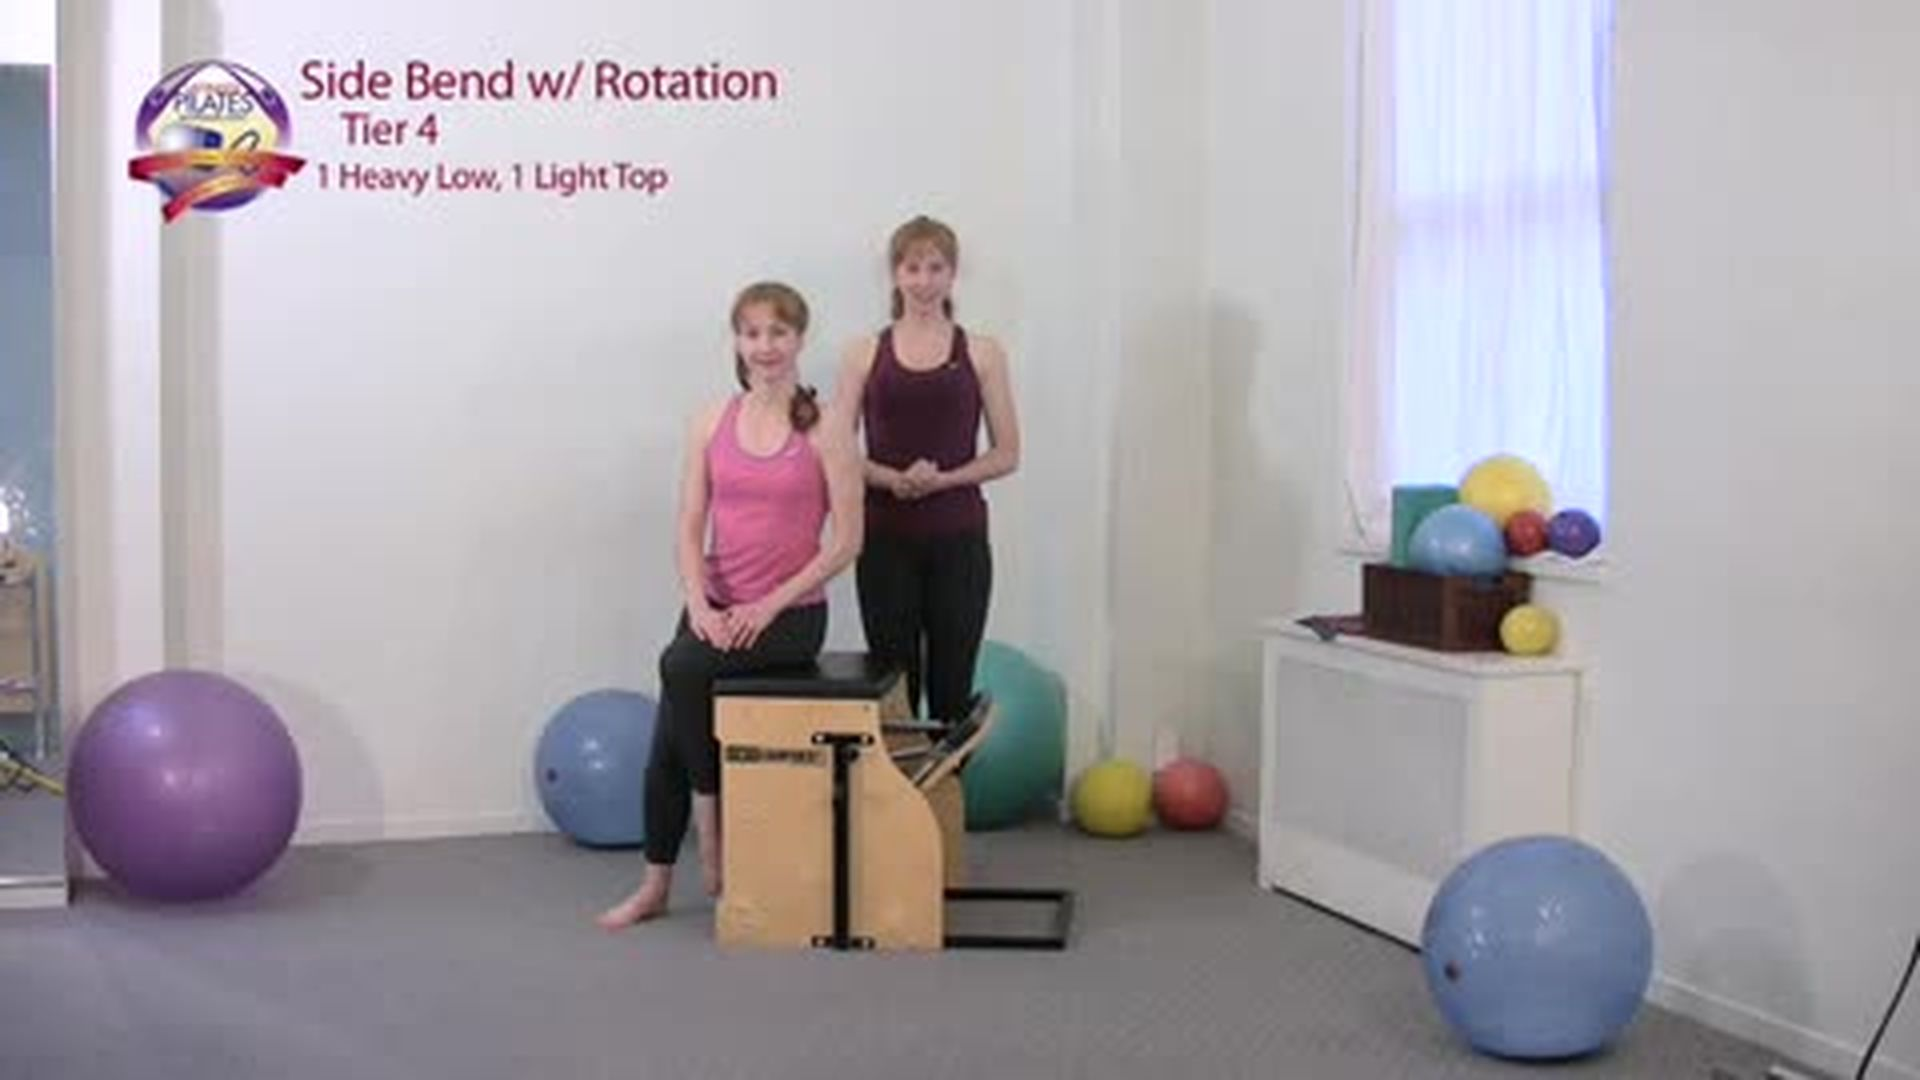 Side Bend With Rotation